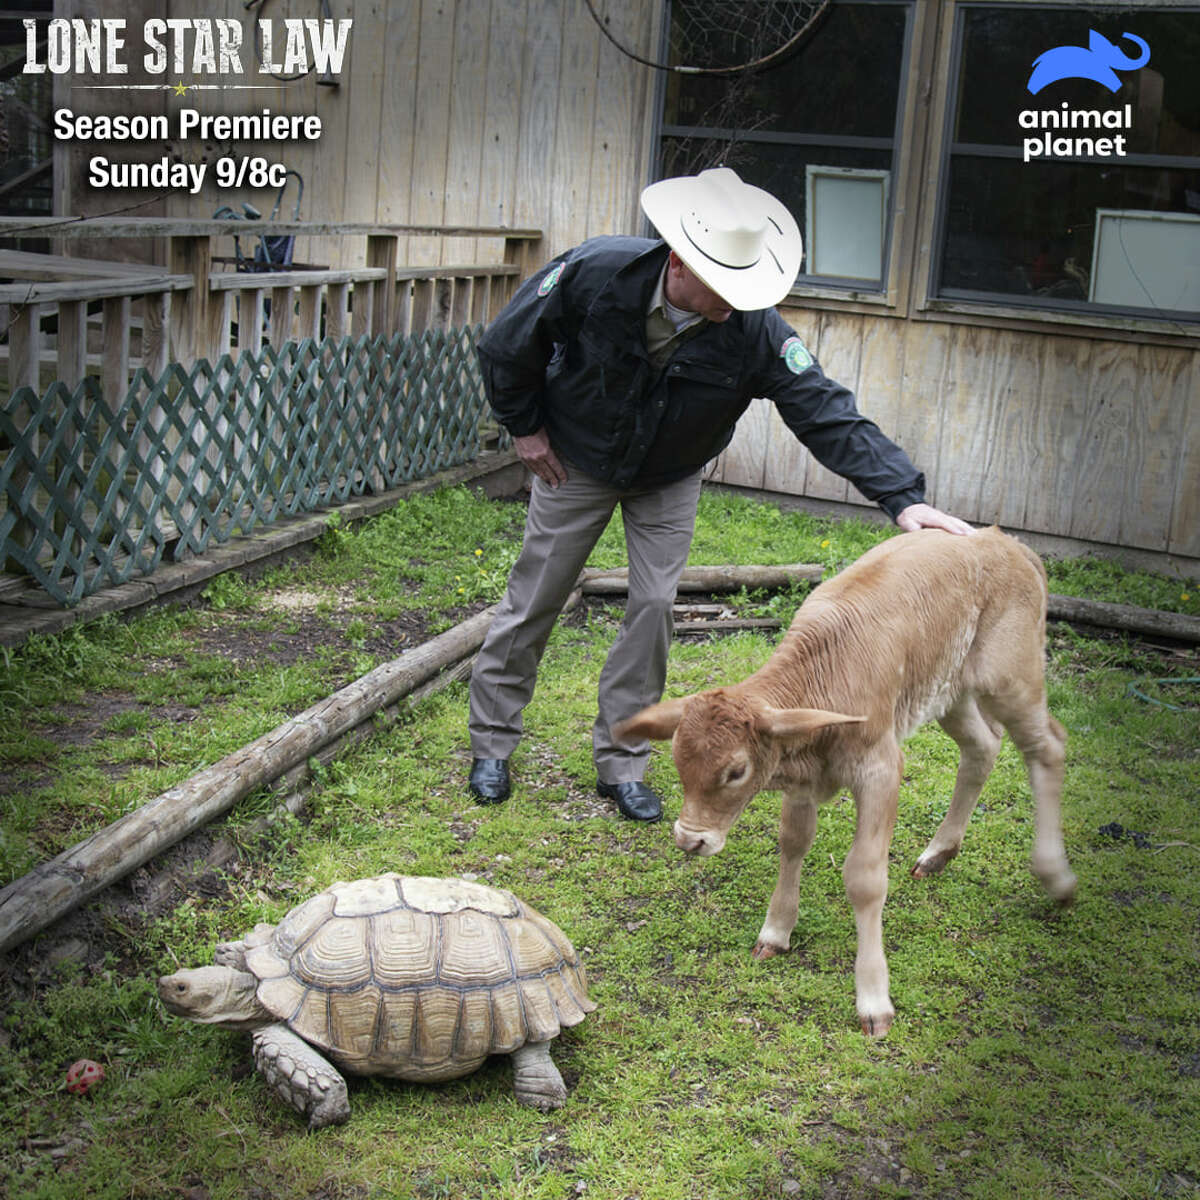 Lone Star Law, which airs every Sunday at 8 p.m. on Animal Planet, tells the tales of the men and women of the Texas Game Wardens who protect the swamps, lakes, rivers, deserts, beaches and woods of Texas.